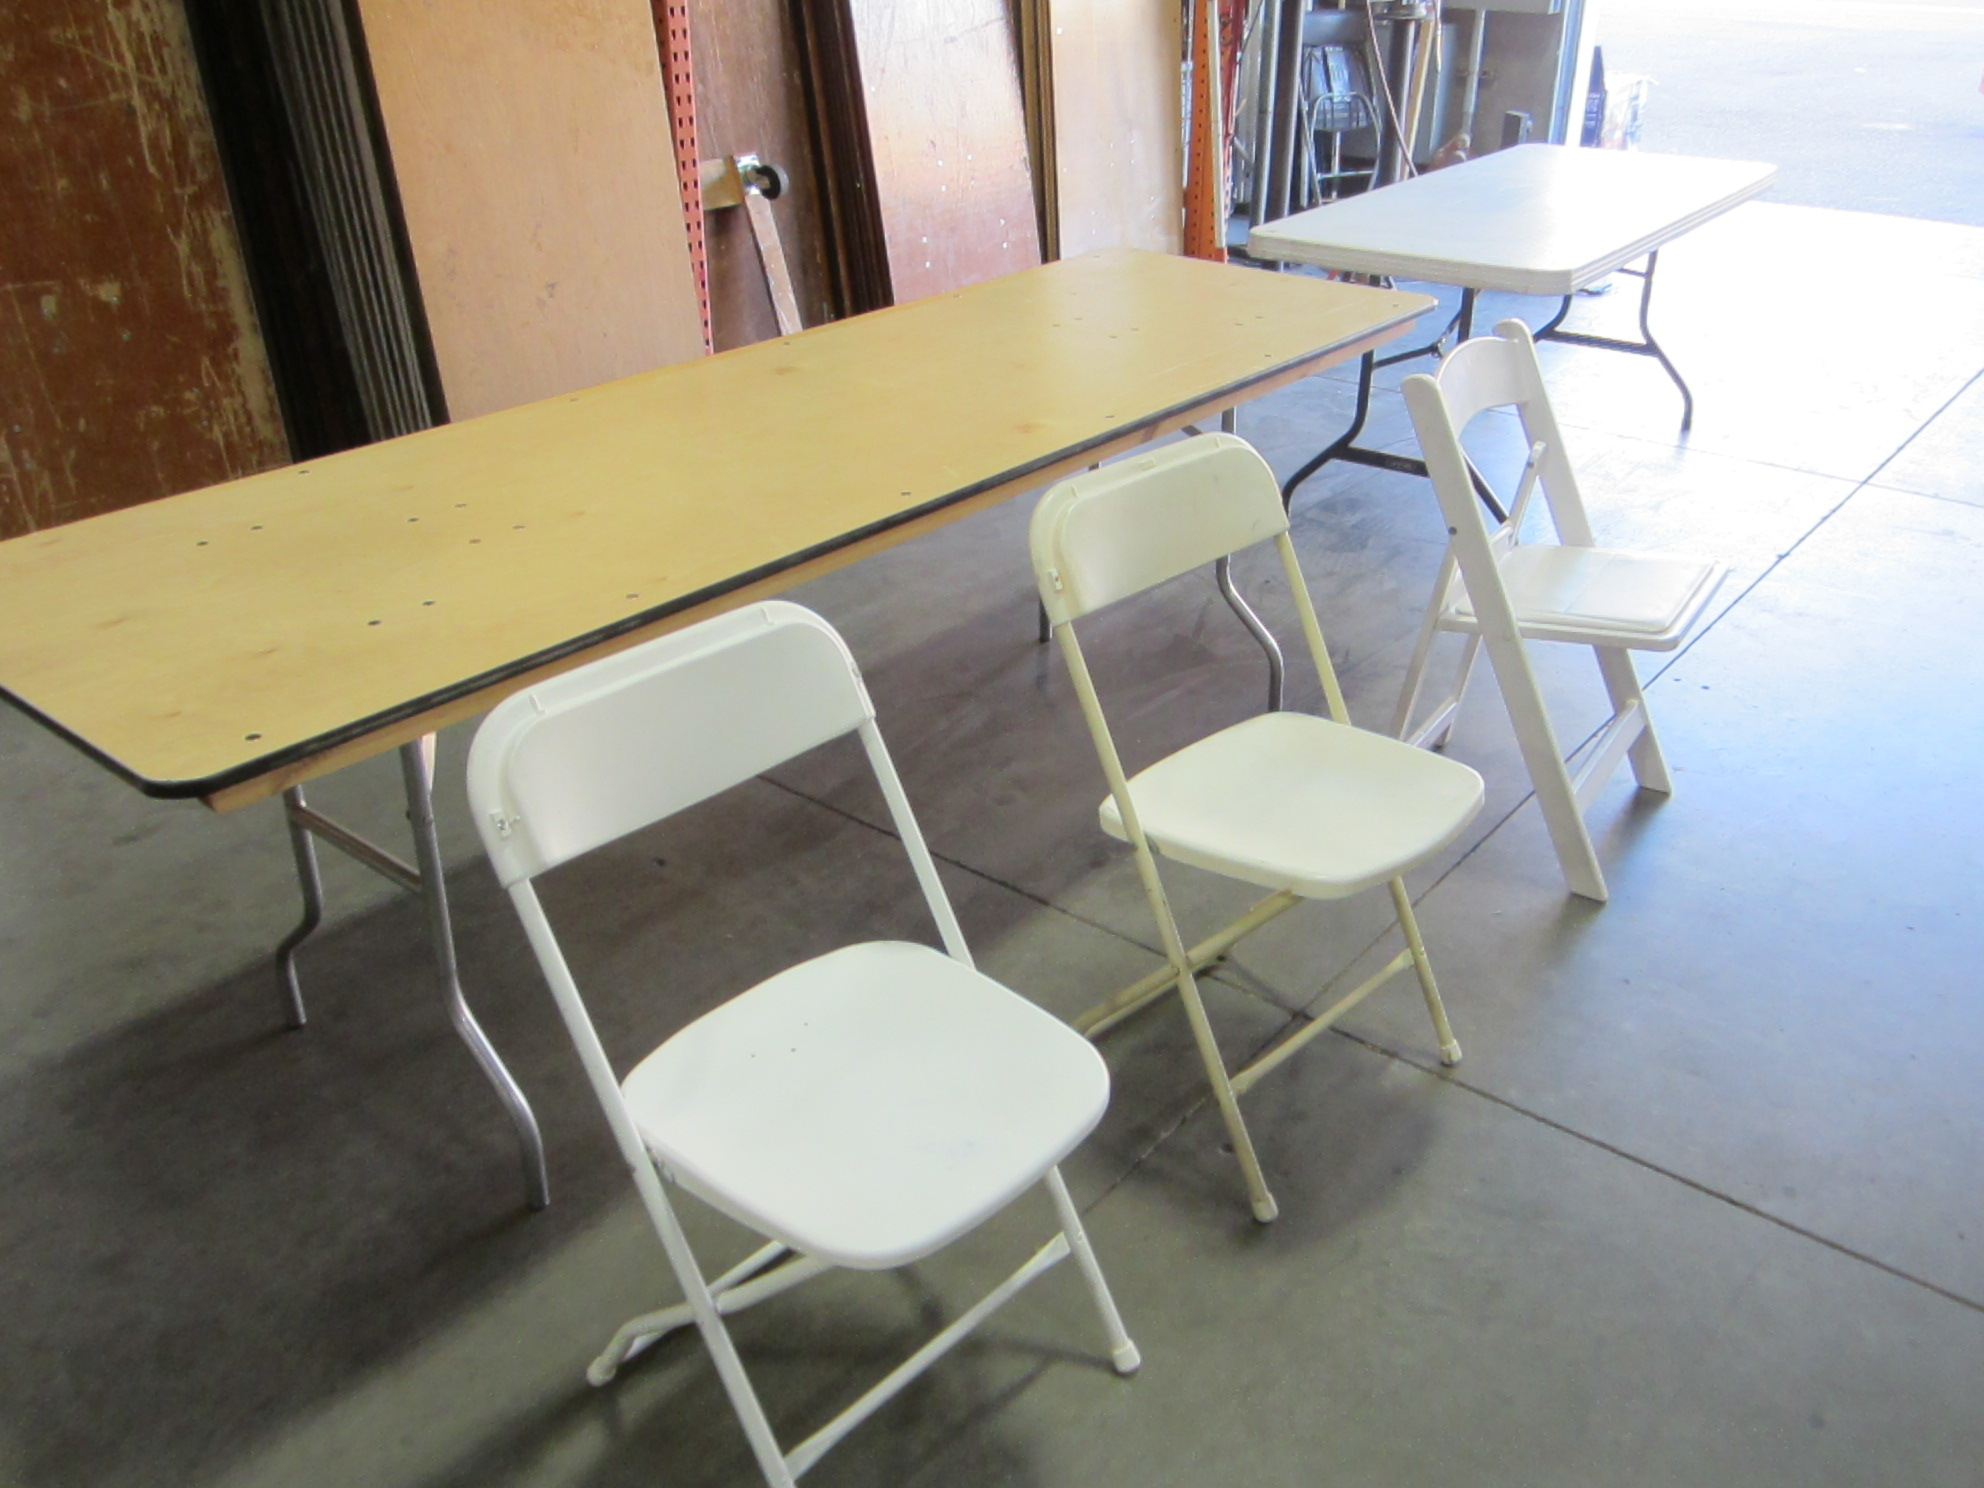 table and chair rentals mn diy covers without sewing taylor equipment event rental in peoria az whitepages